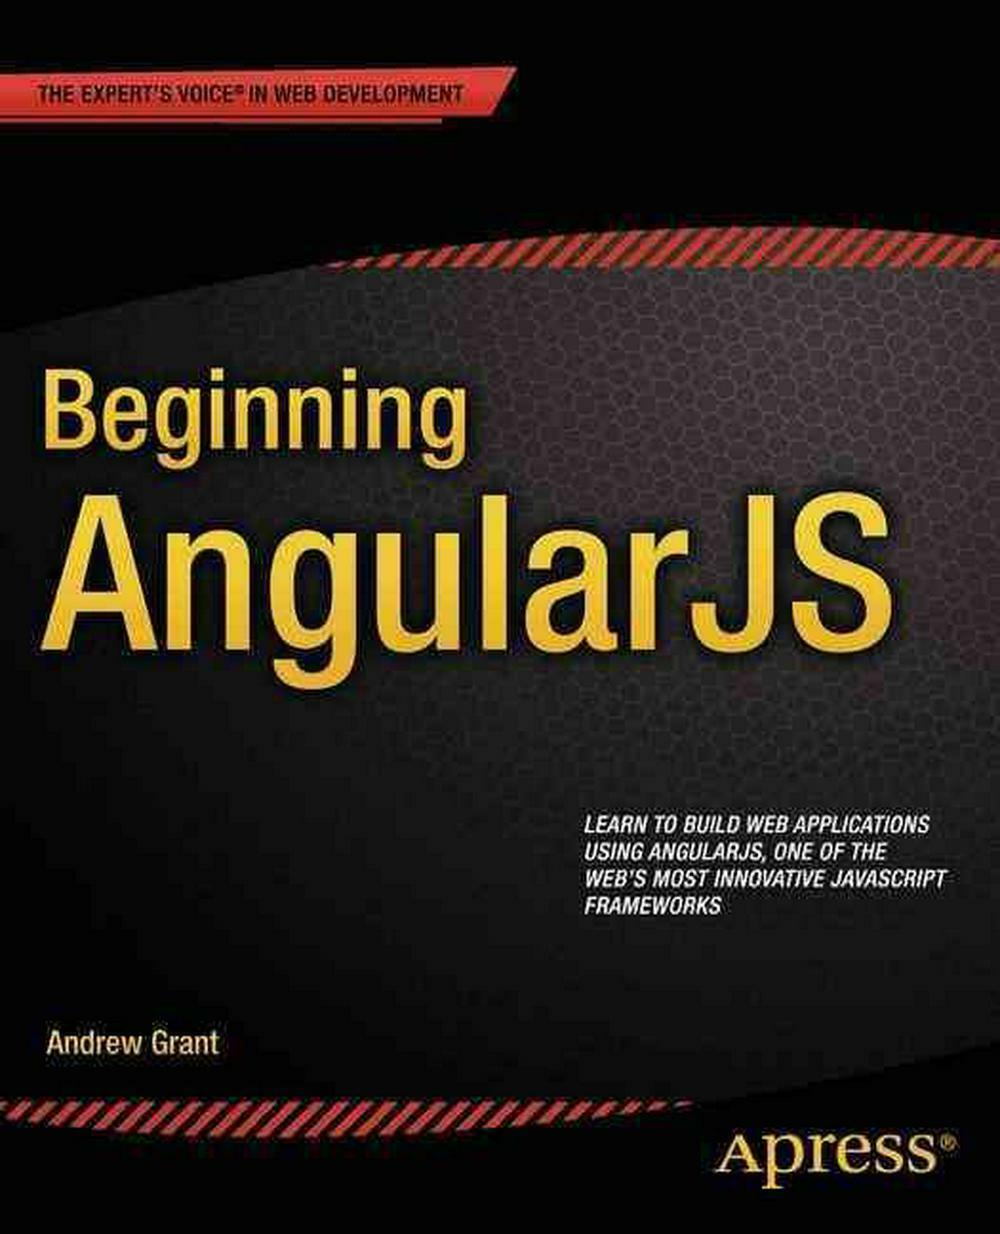 Beginning Angularjs by Andrew Grant (English) Paperback Book Free Shipping! |